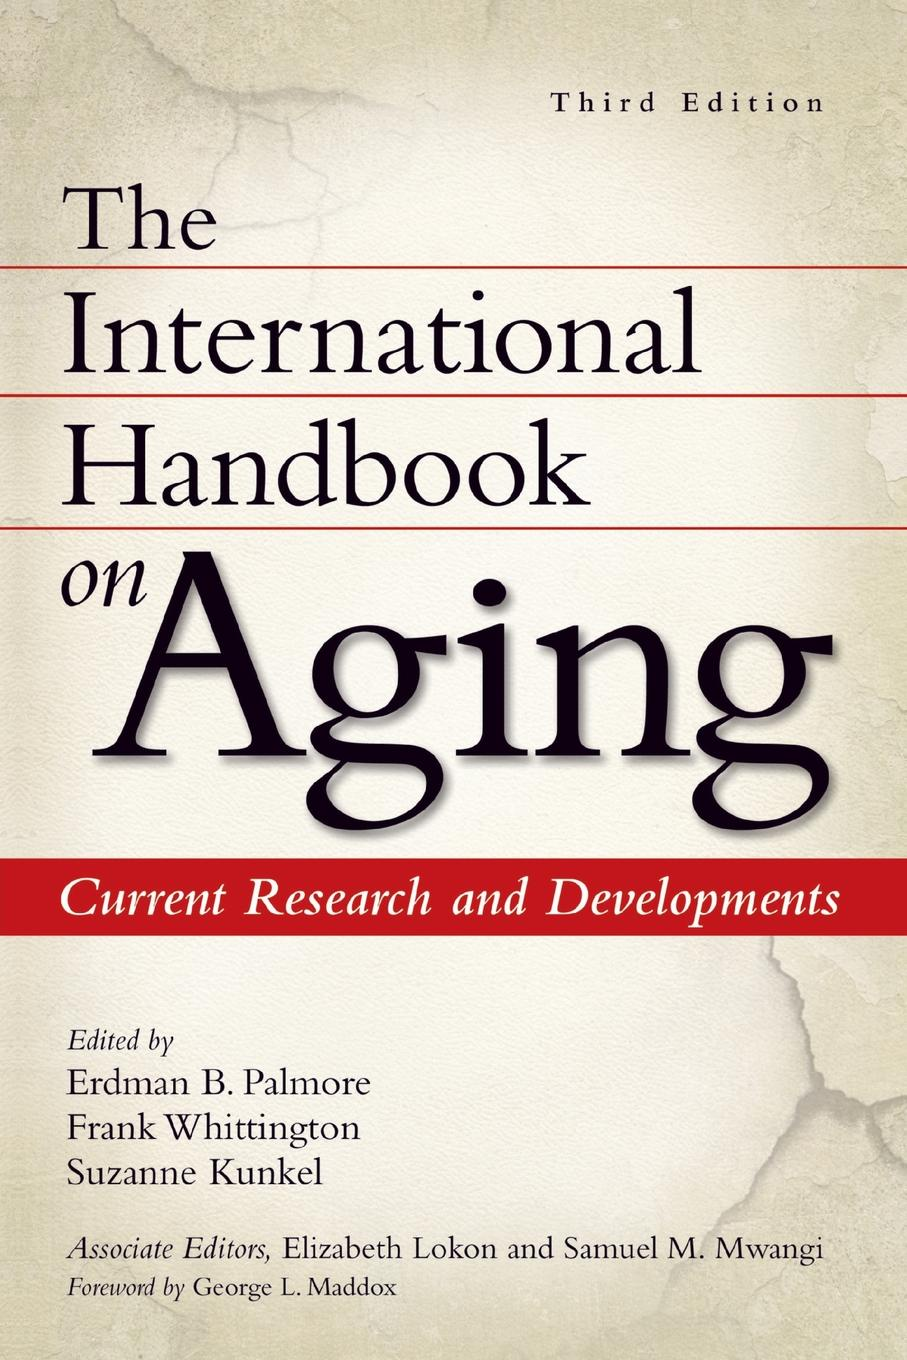 International Handbook on Aging, The. Current Research and Developments hong cheng the handbook of international advertising research